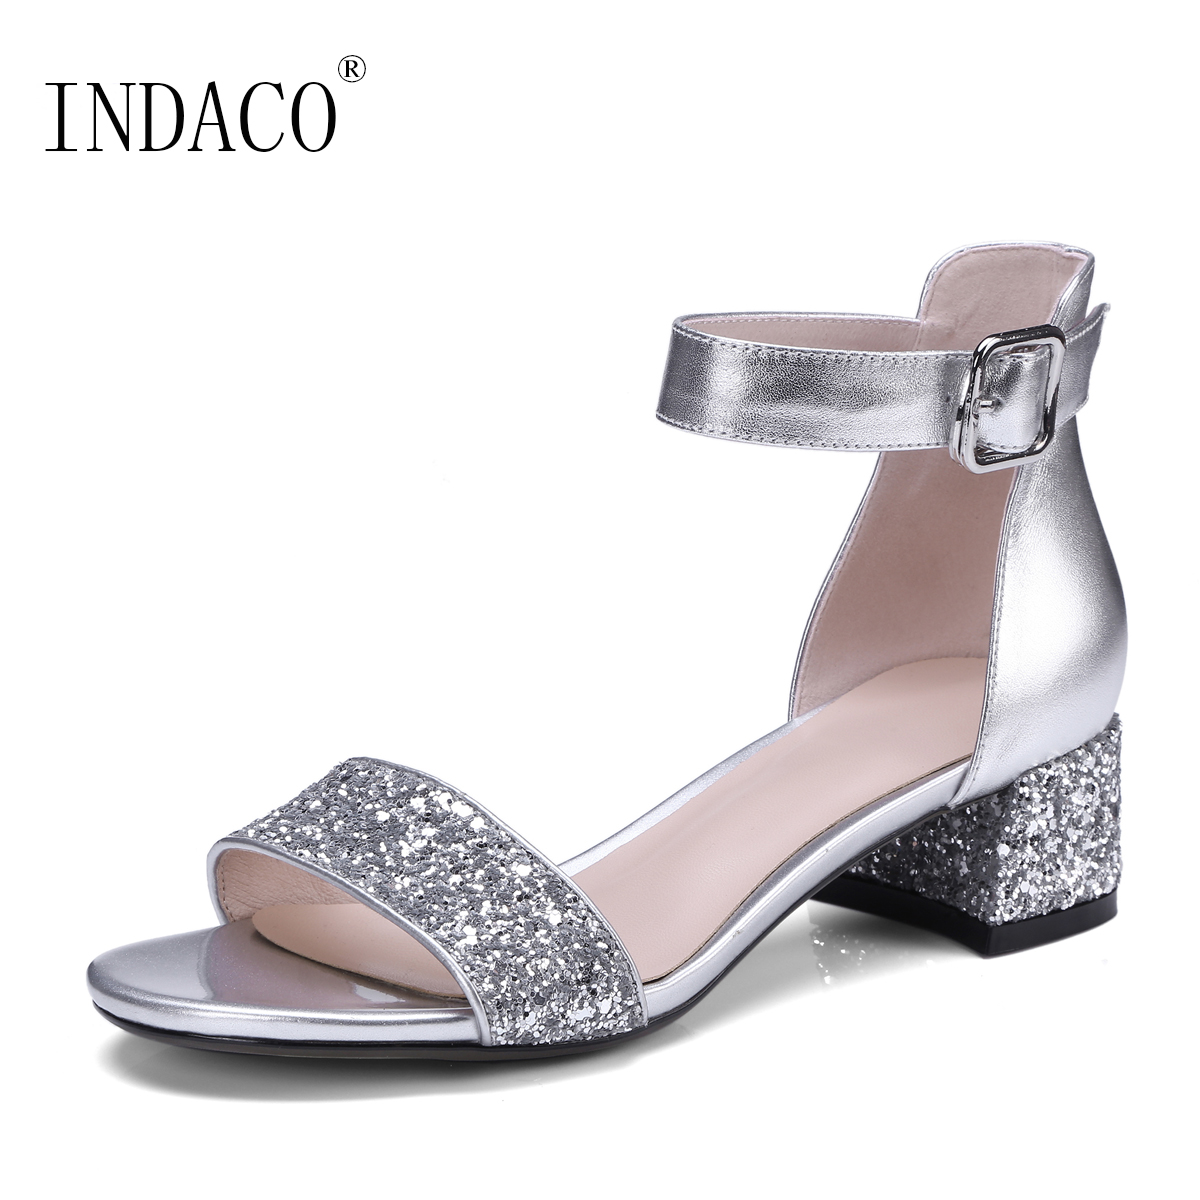 Silver Black Glitter Leather Summer Sandals Ankle Strap Thick High Heel  Cover Heel Shoes 4cm Sandalen Dames c2856600fd5e